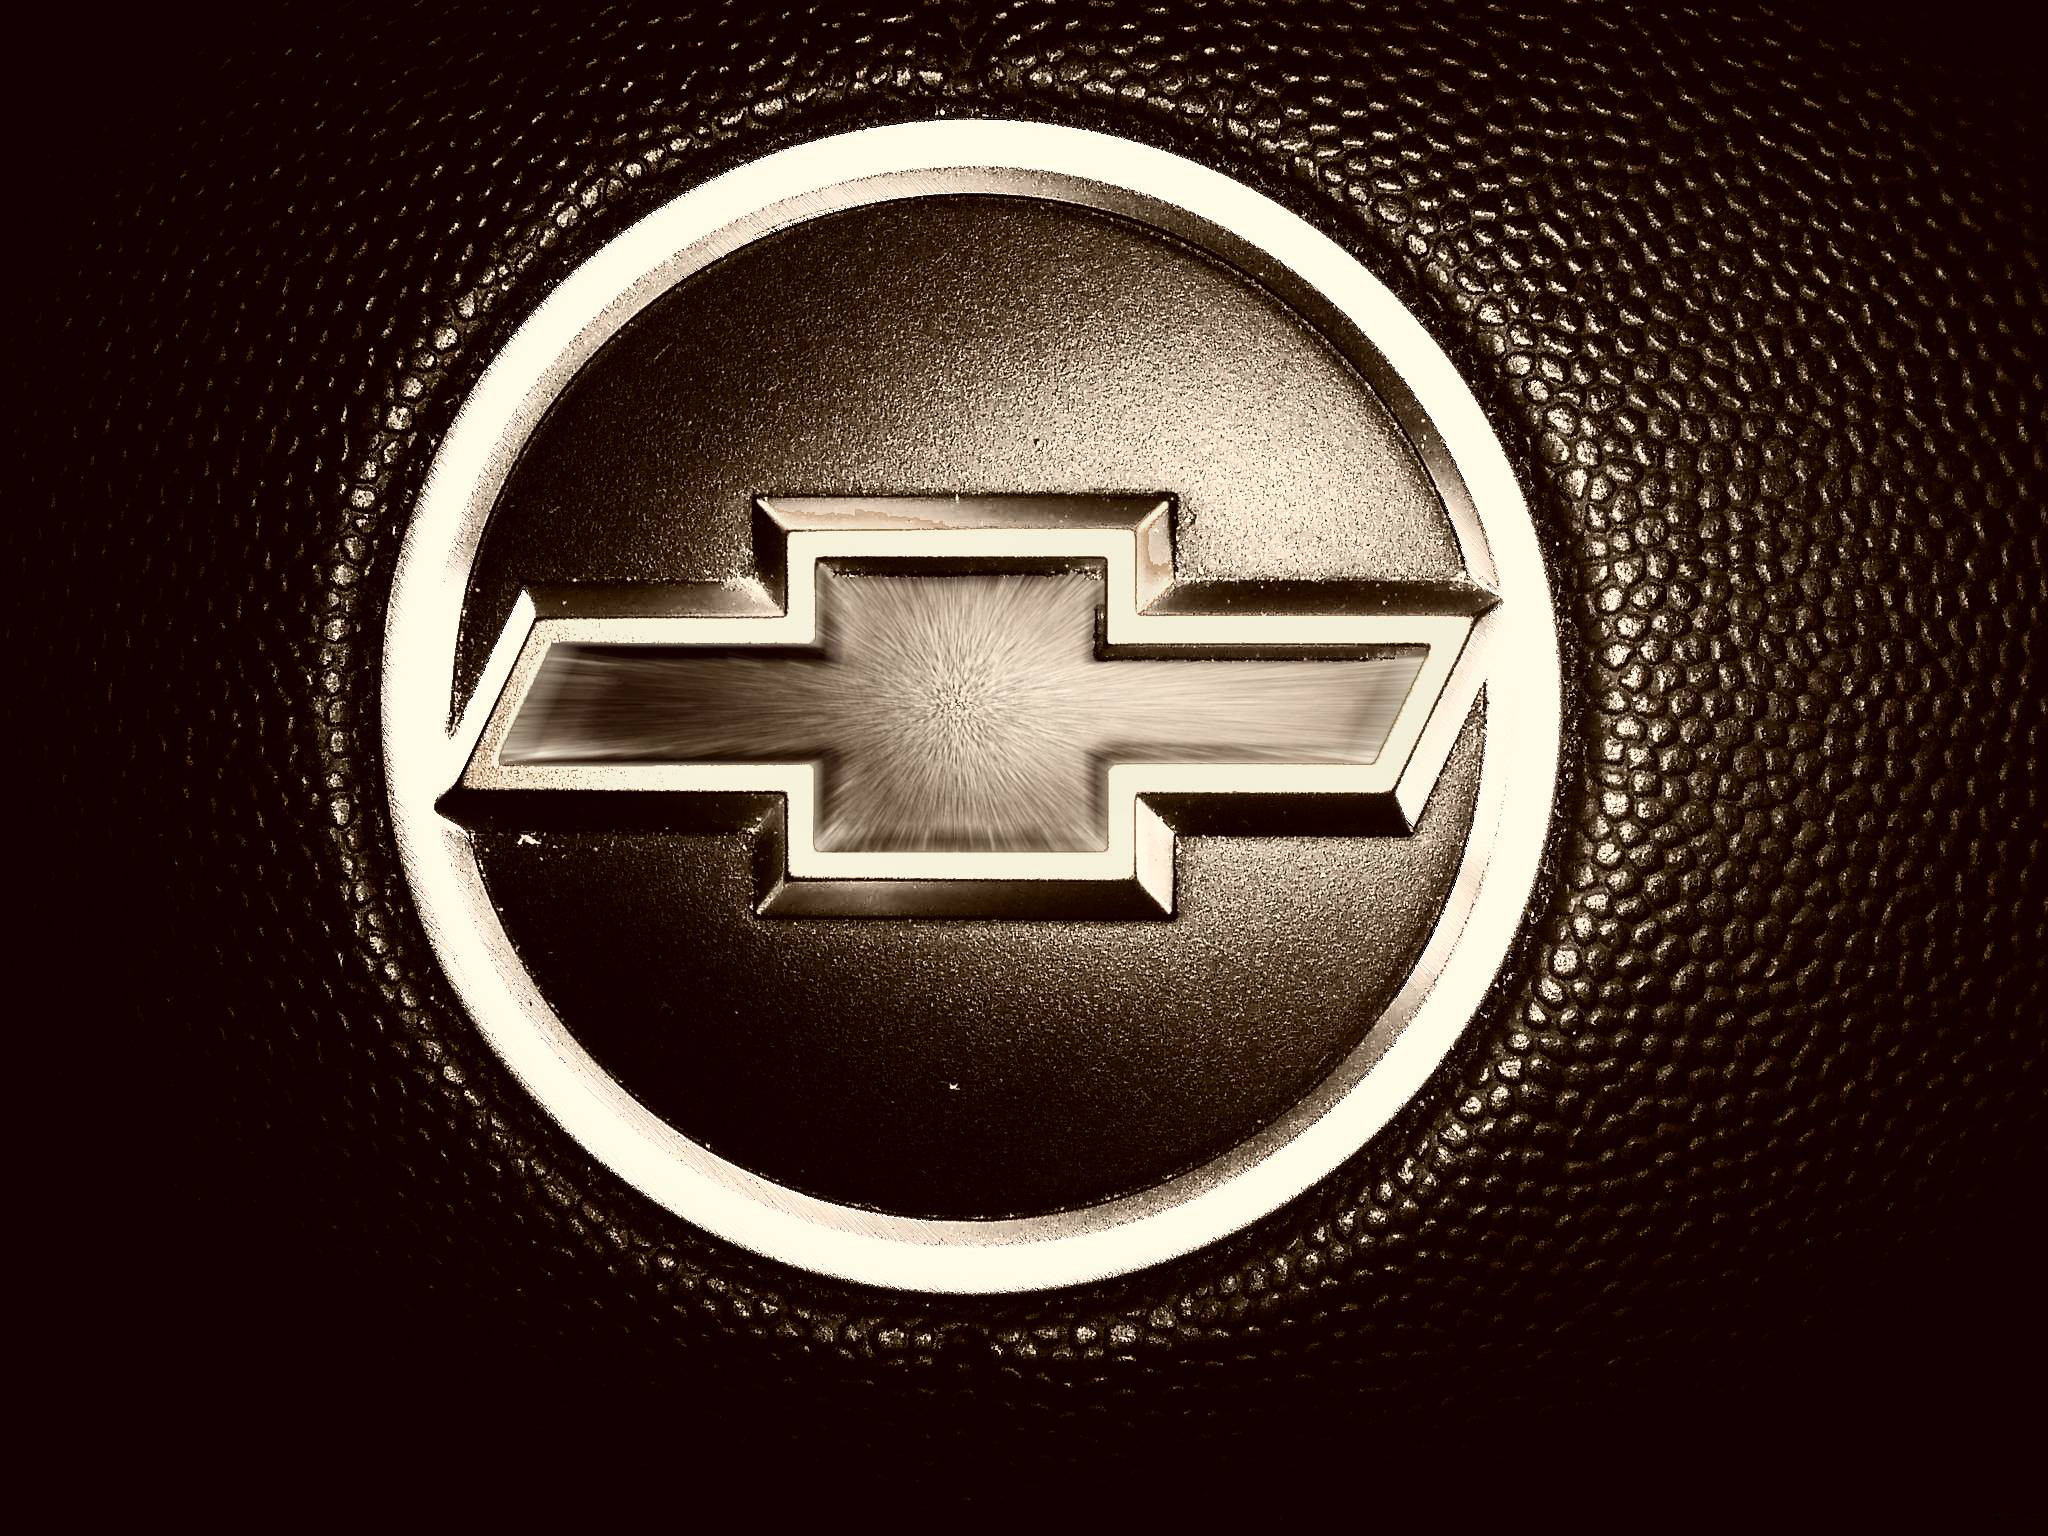 2048x1536 chevy logo wallpaper - Google Search | Vehicle | Pinterest | Chevy .